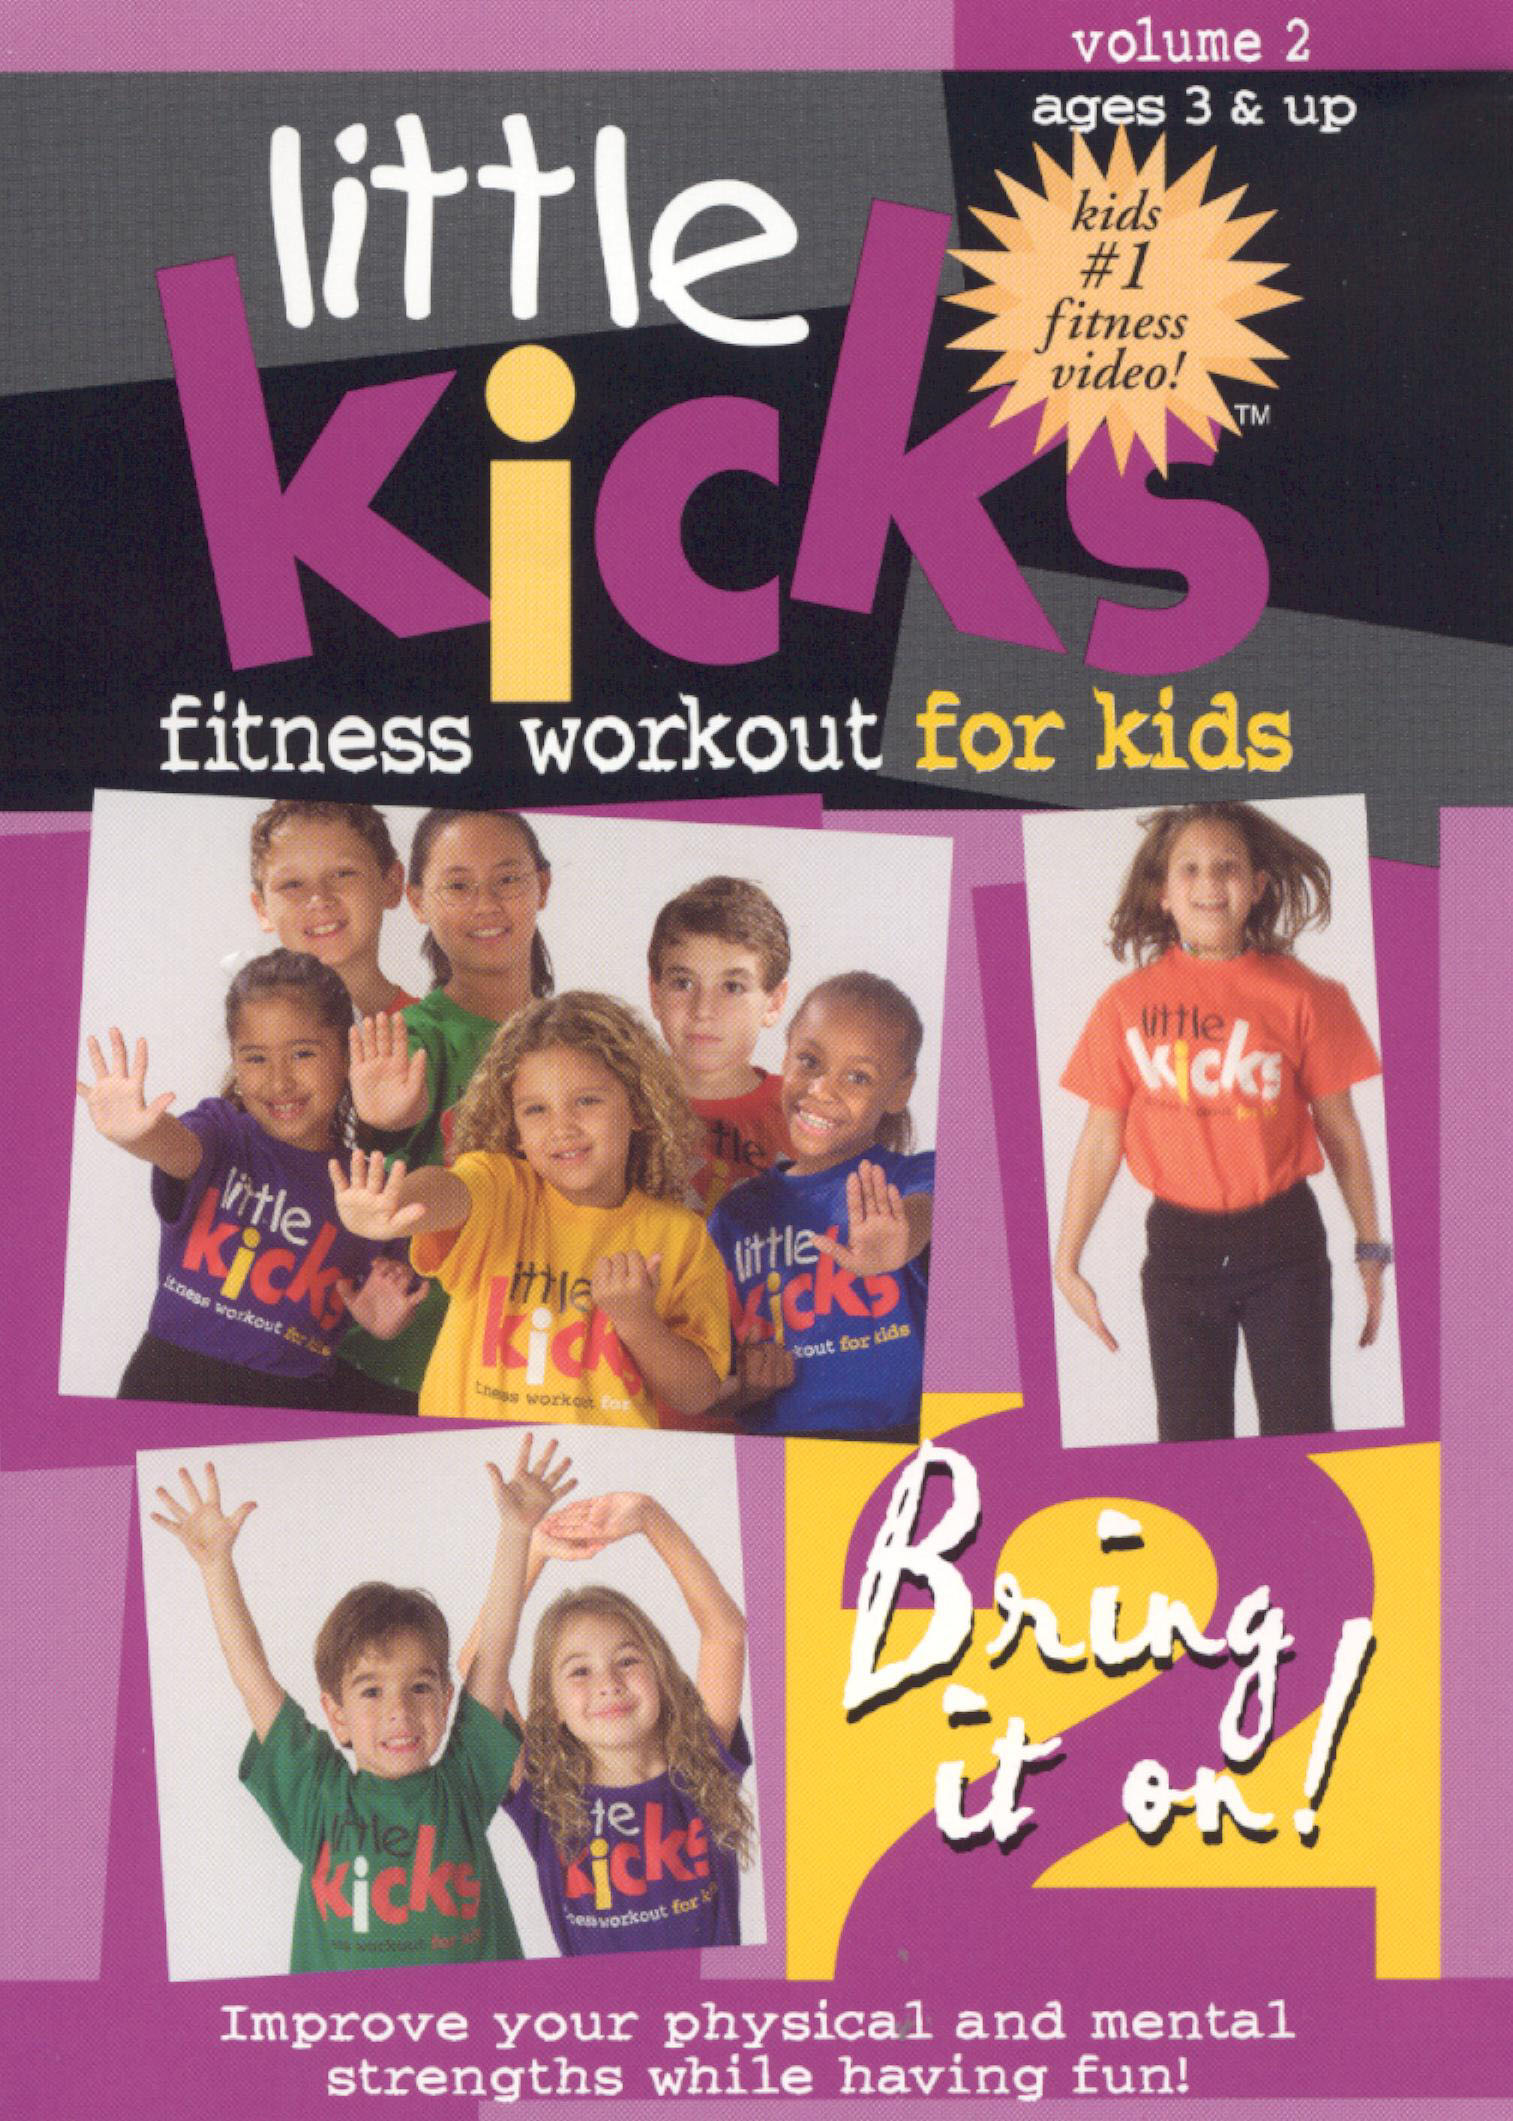 Little Kicks: Fitness Workout for Kids, Vol. 2 - Bring It On!